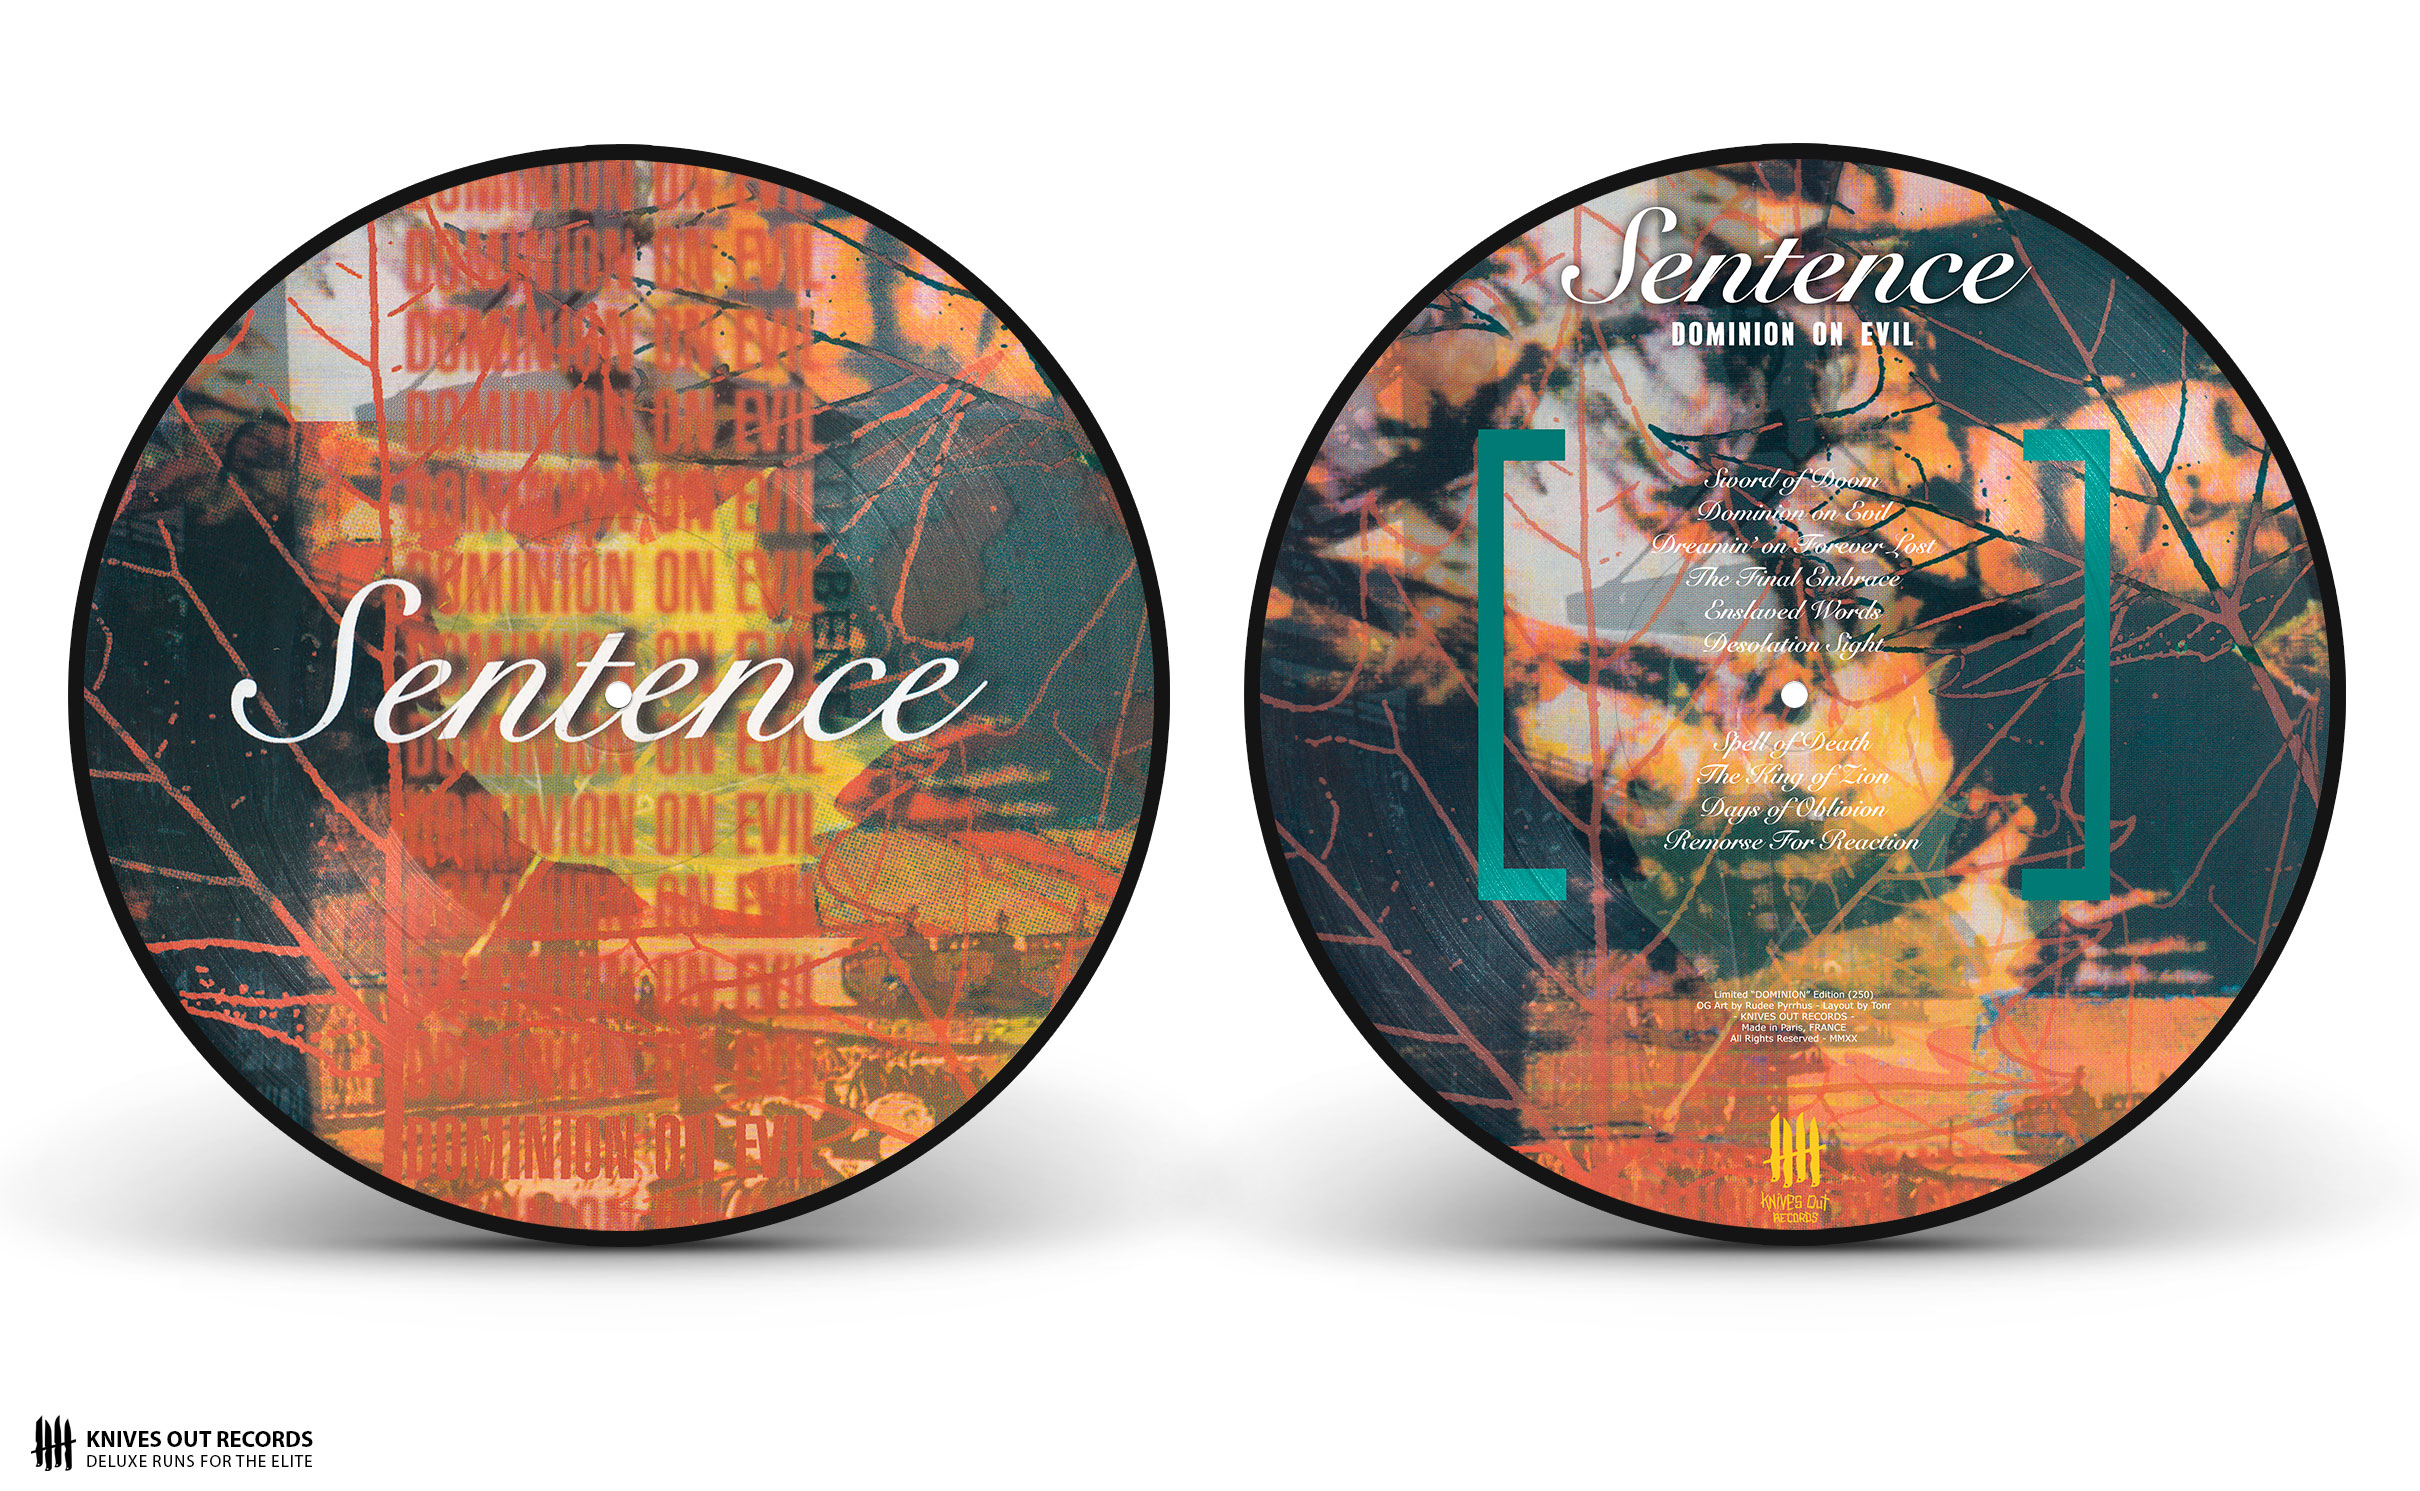 SENTENCE Dominion on Evil Picture Disc Vinyl